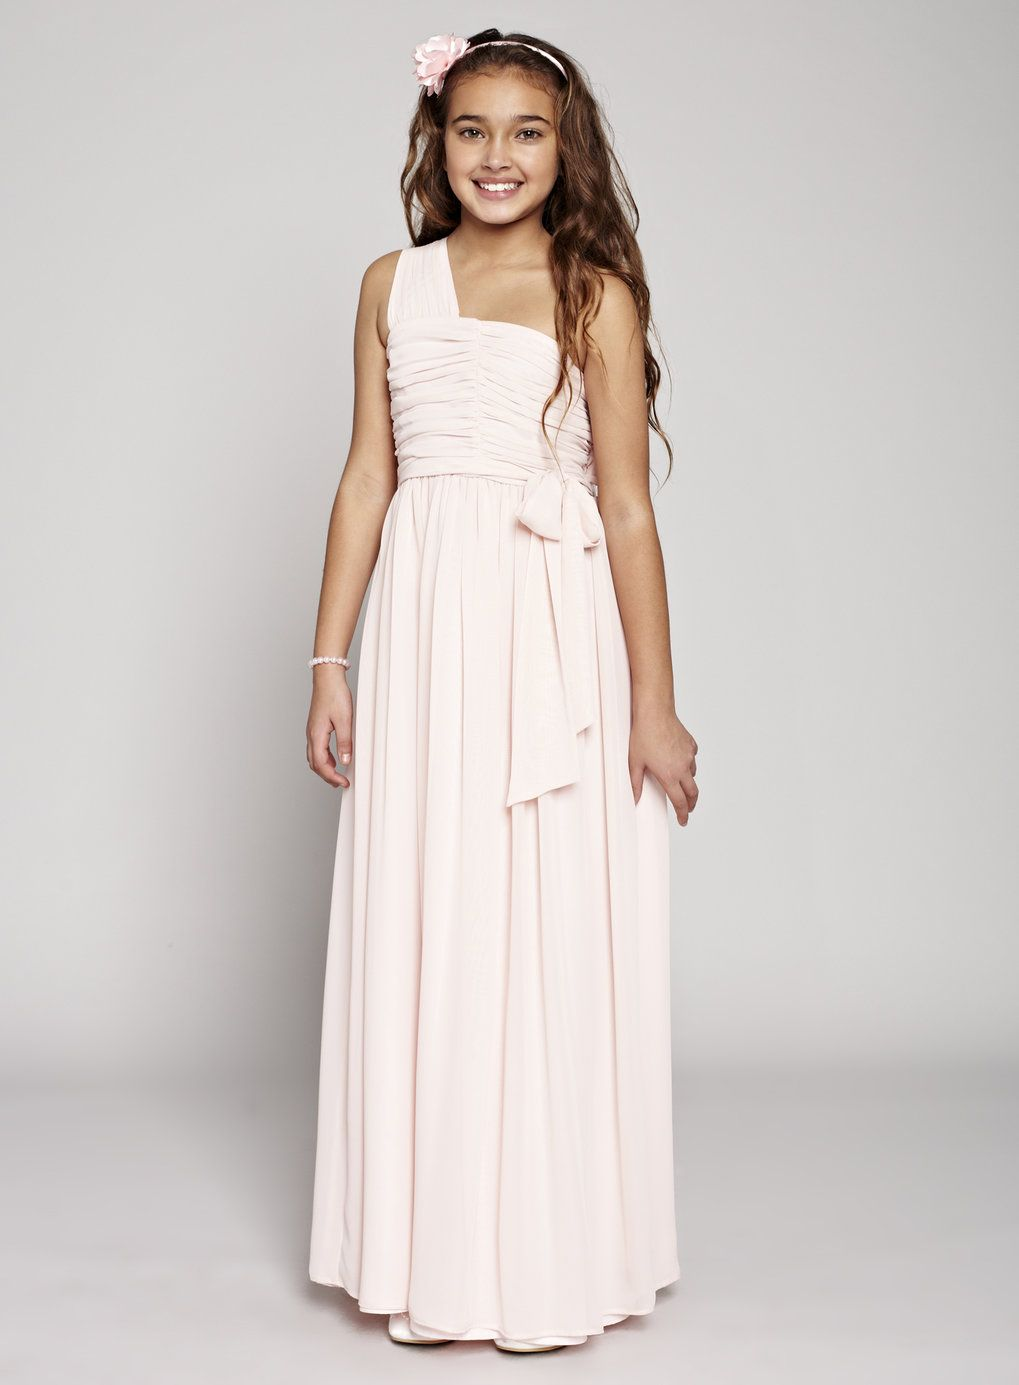 teen blush one shoulder bridesmaid dress wedding bhs